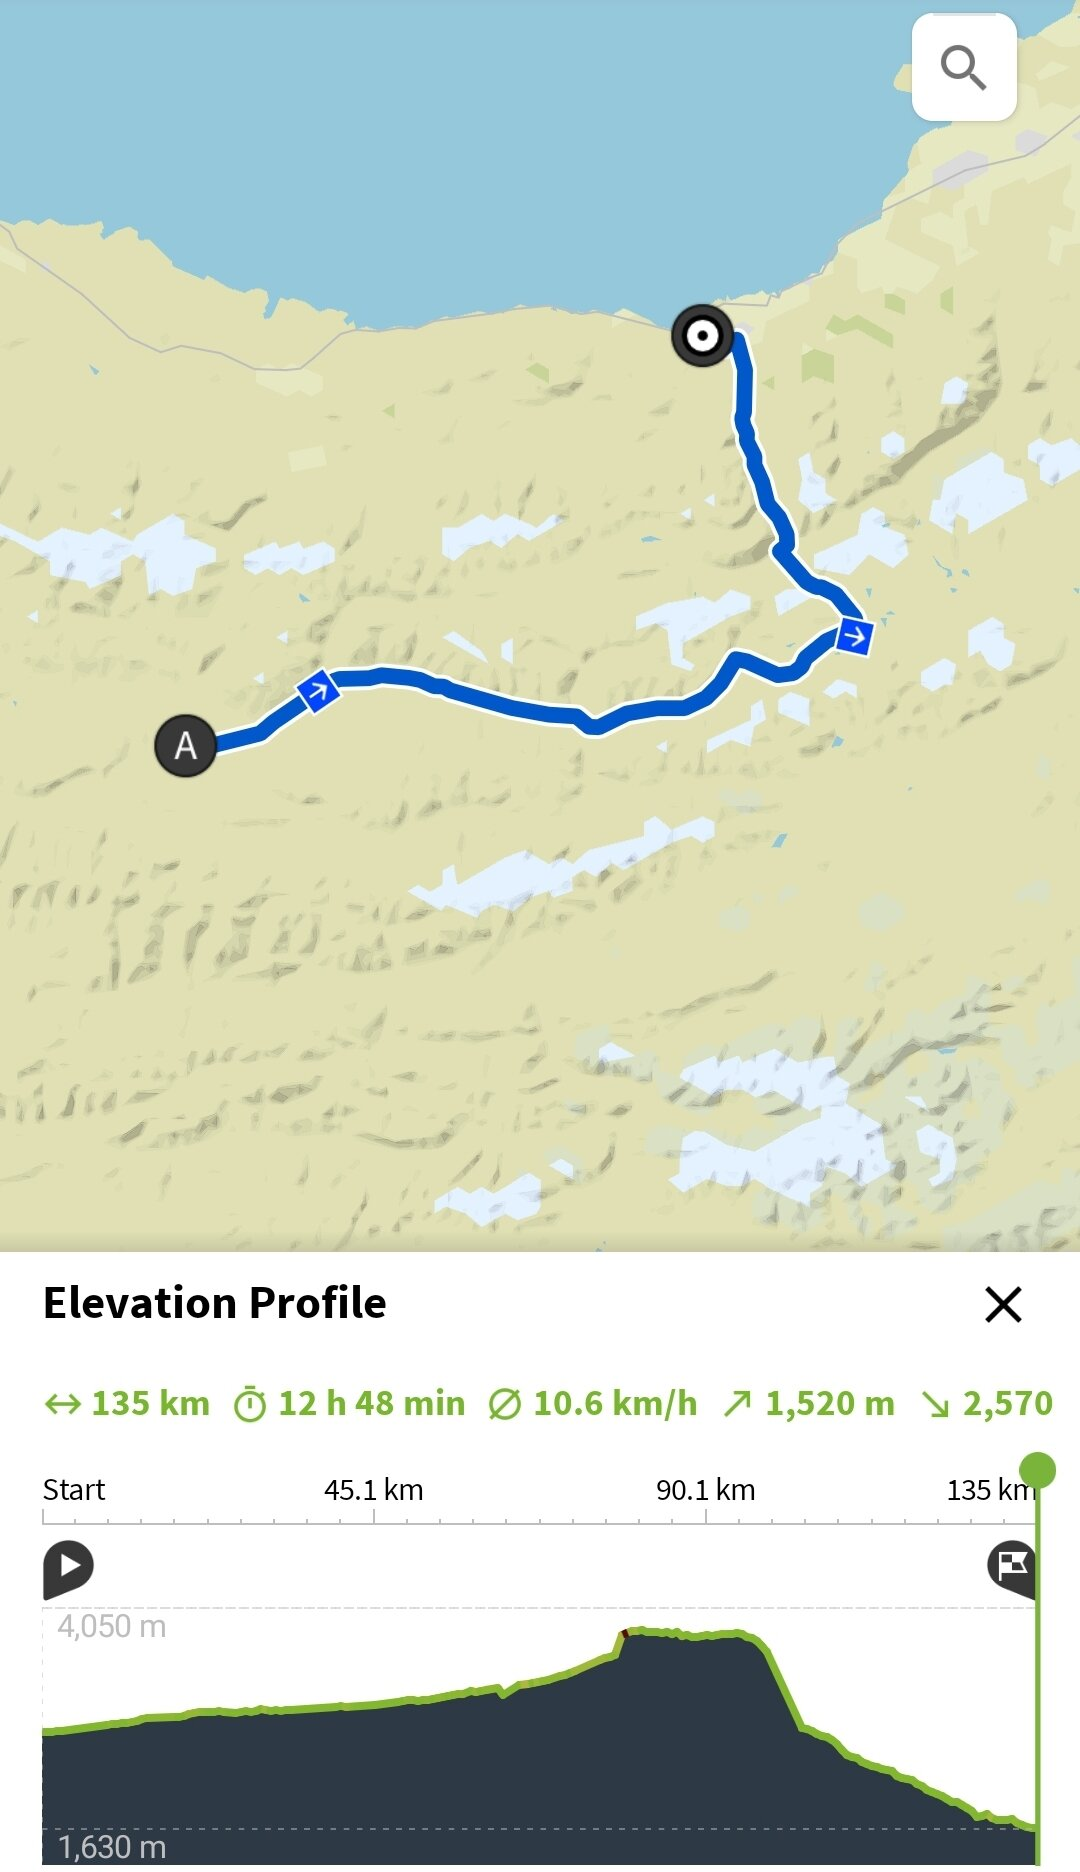 Day 9 // Route crossing to CP3 Baskoon - Time: 12h 48min from 9:00 - 21:30Distance: 135kmVertical meters: 1520m (2570m descent)Highest point: 38000m (Tosor Pass)Weather: Hot and sunny, then really cold at nightSleep: on a couch at CP3 Aist Guesthouse